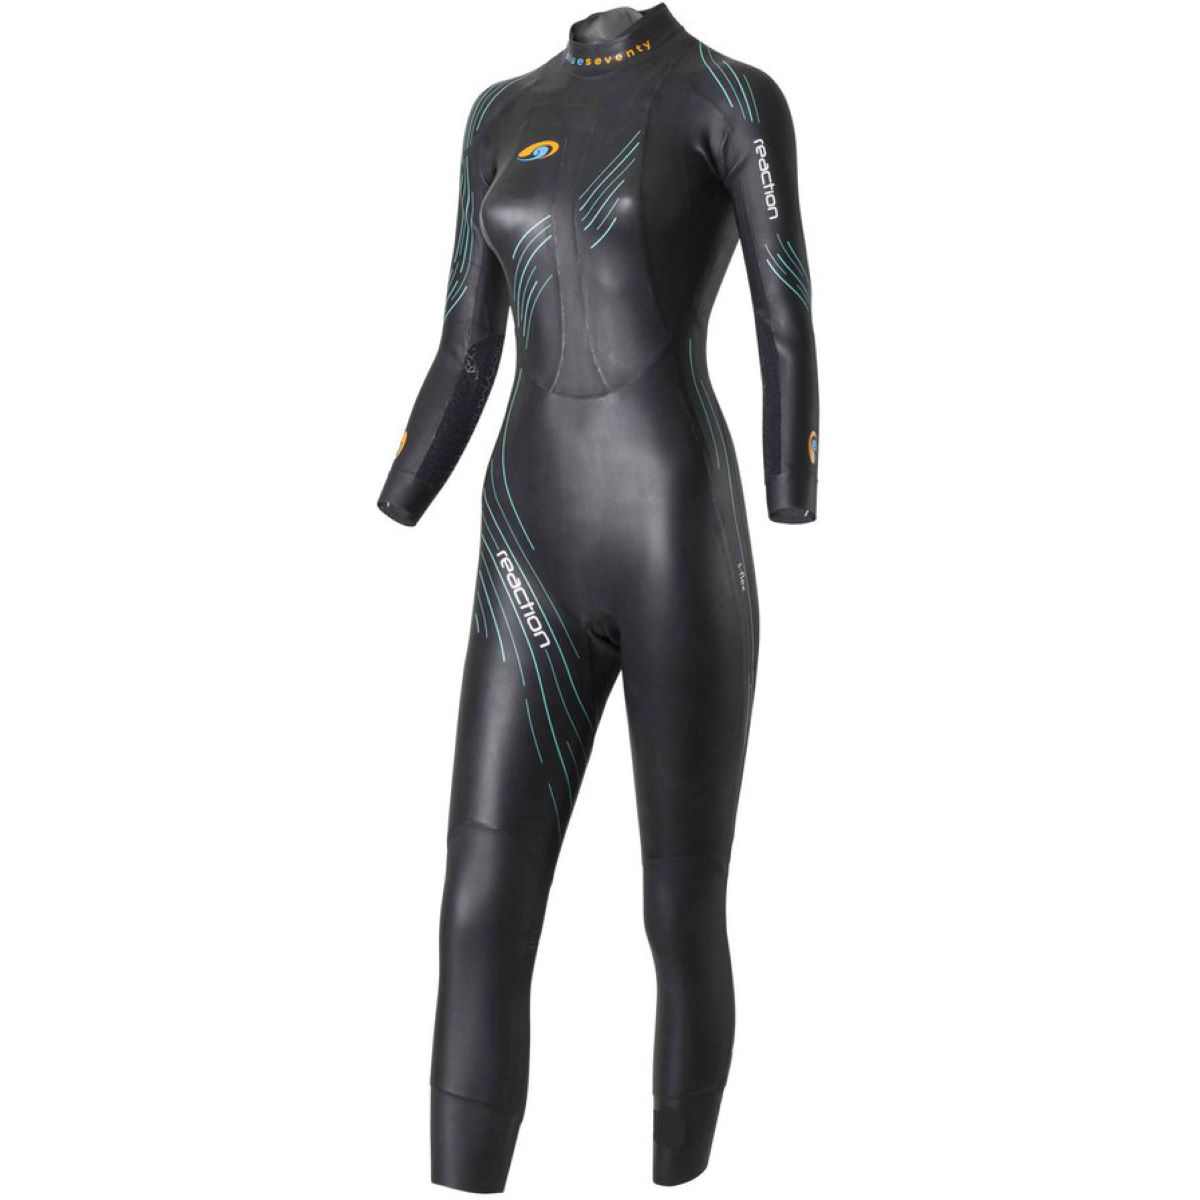 Combinaison Femme blueseventy Reaction - M - Plus Noir